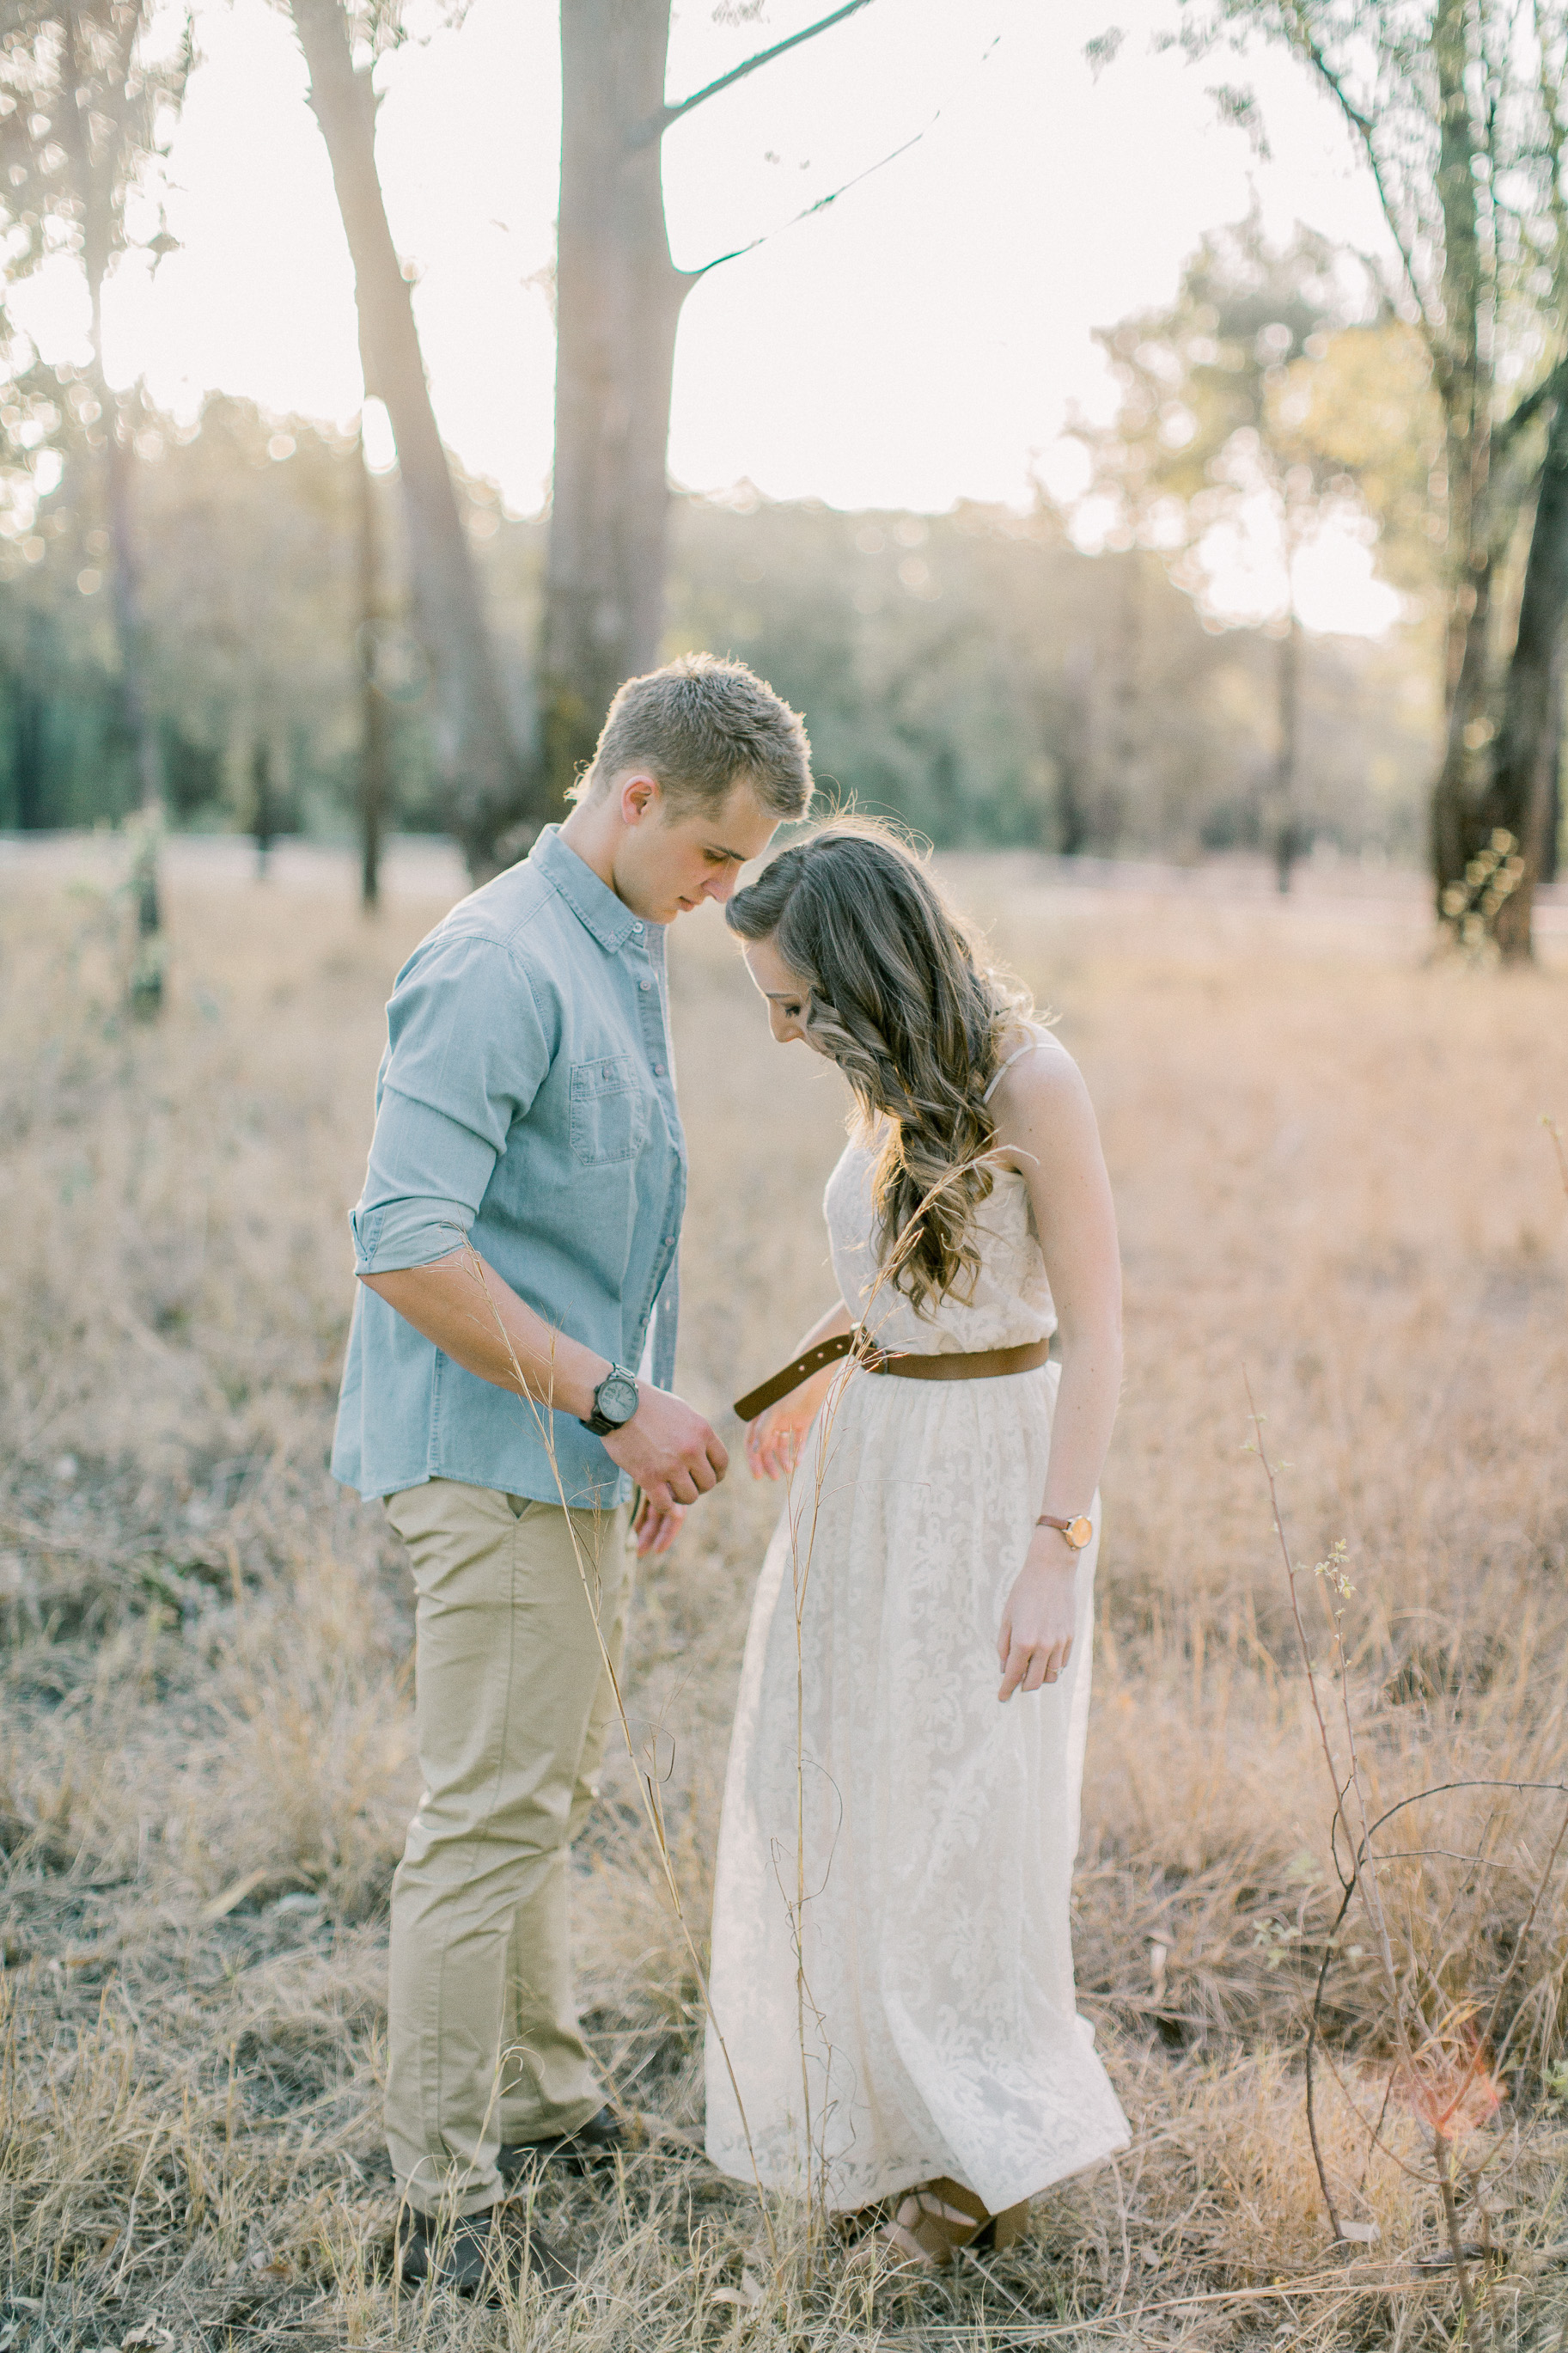 gauteng wedding photographer clareece smit_012.jpg